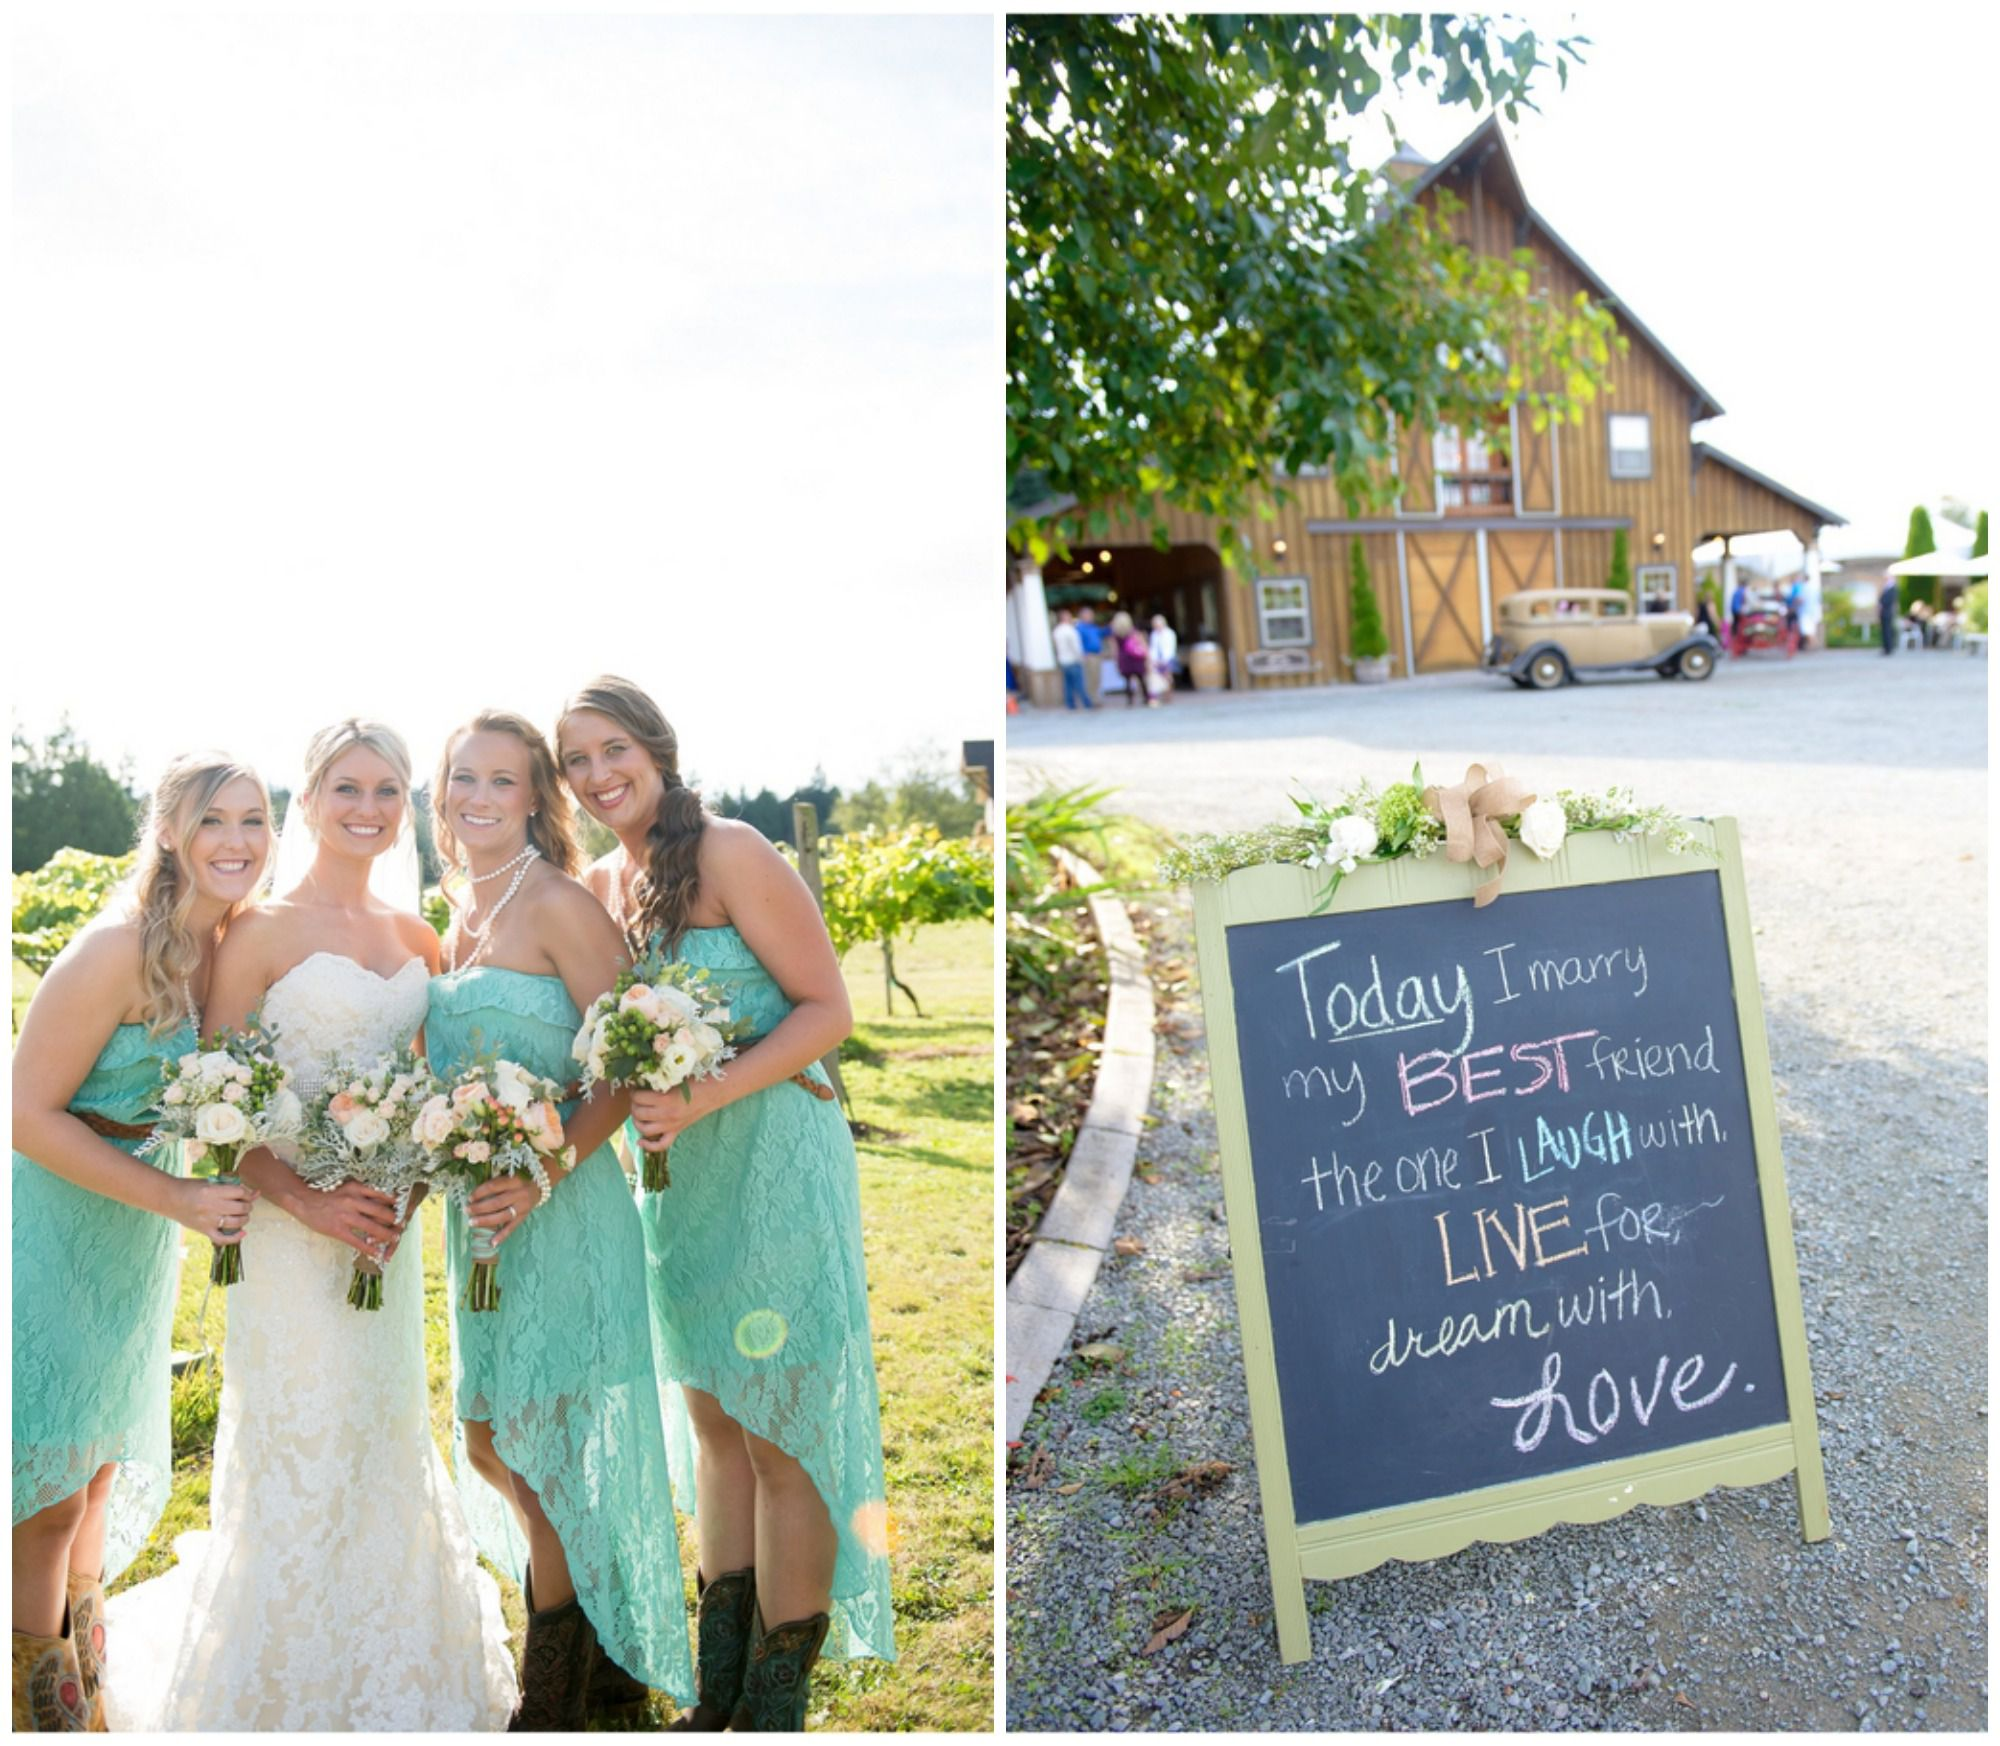 Country Wedding Ideas: Country Wedding On A Budget